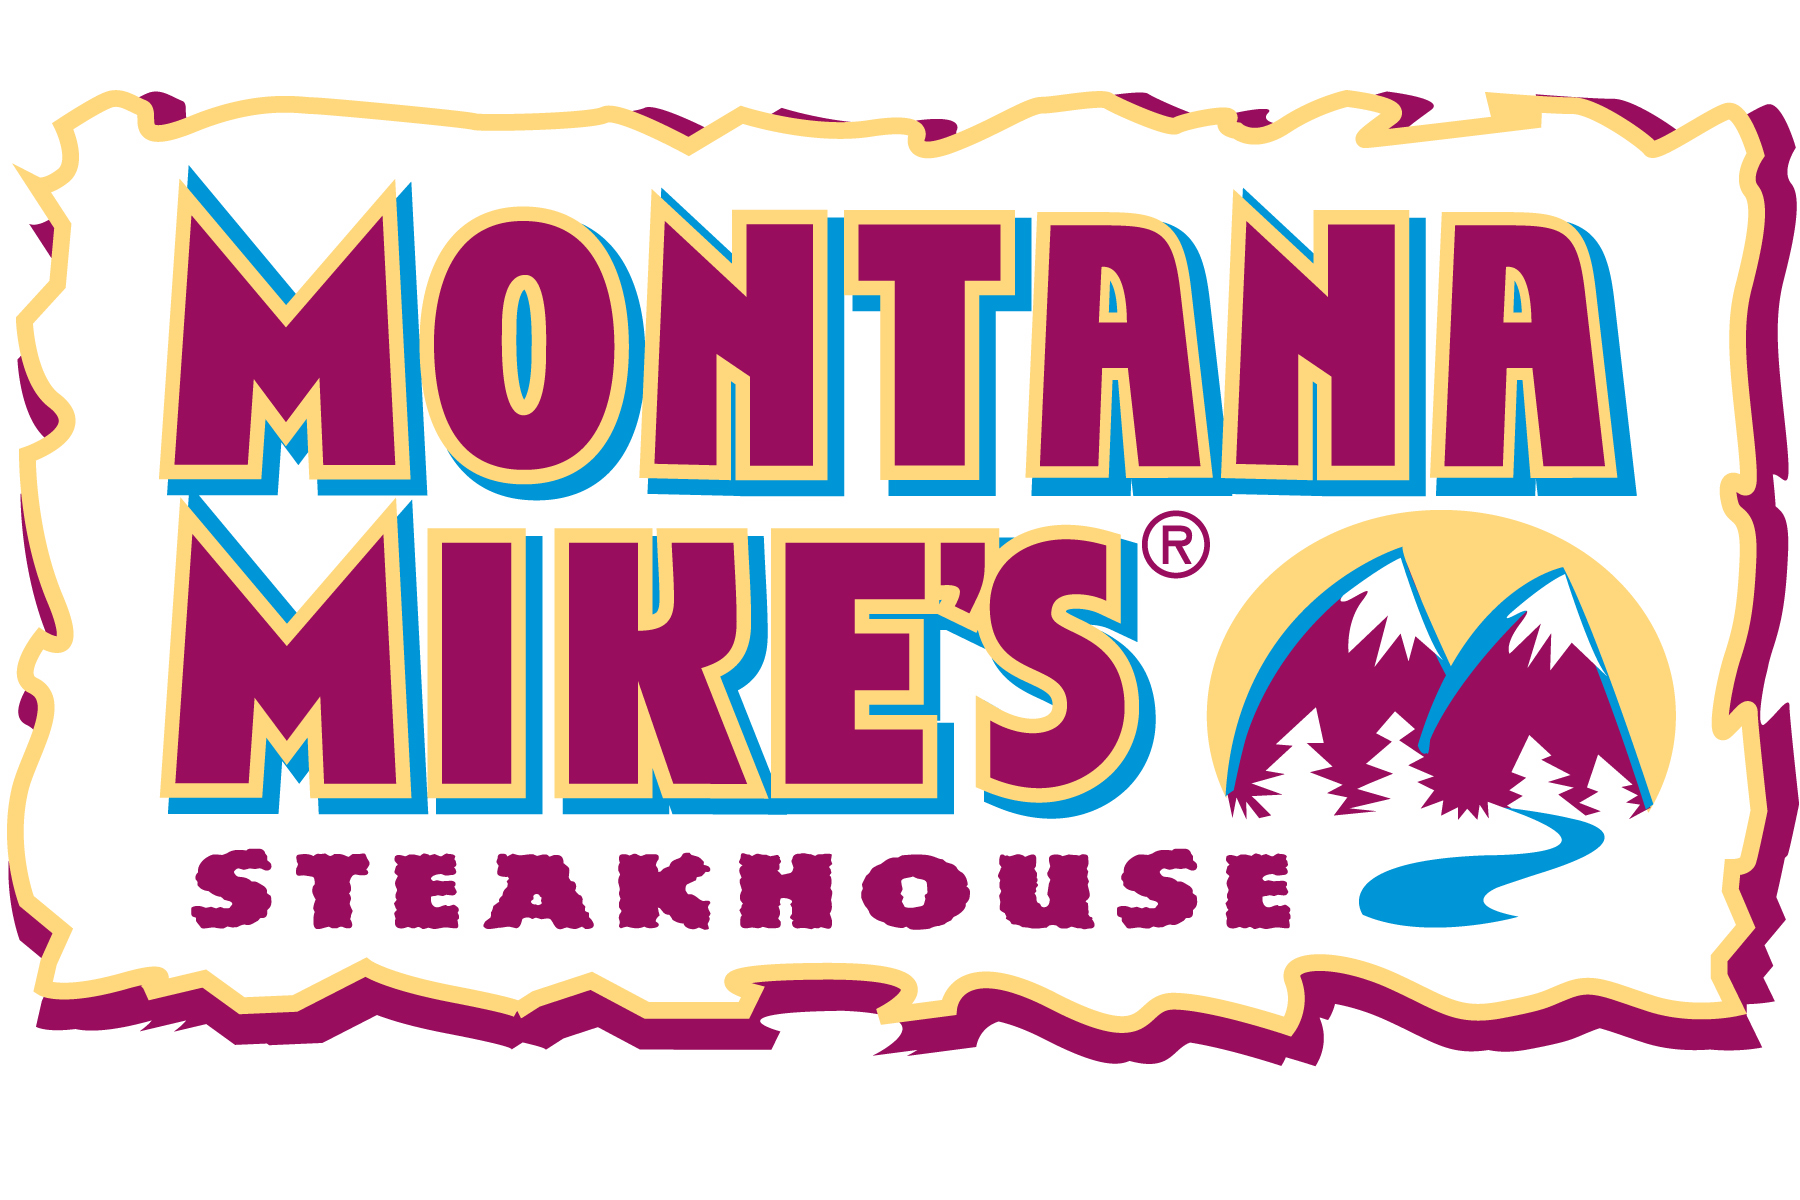 Montana Mike's Steak House